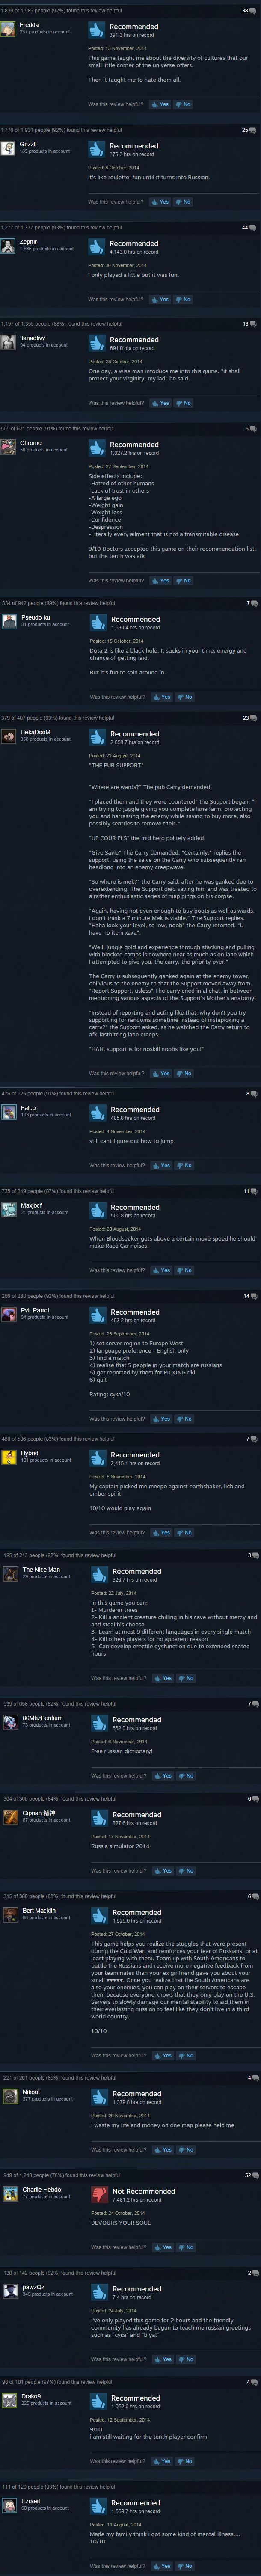 dota 2 steam user reviews - DotaCaps - Funny Dota Images